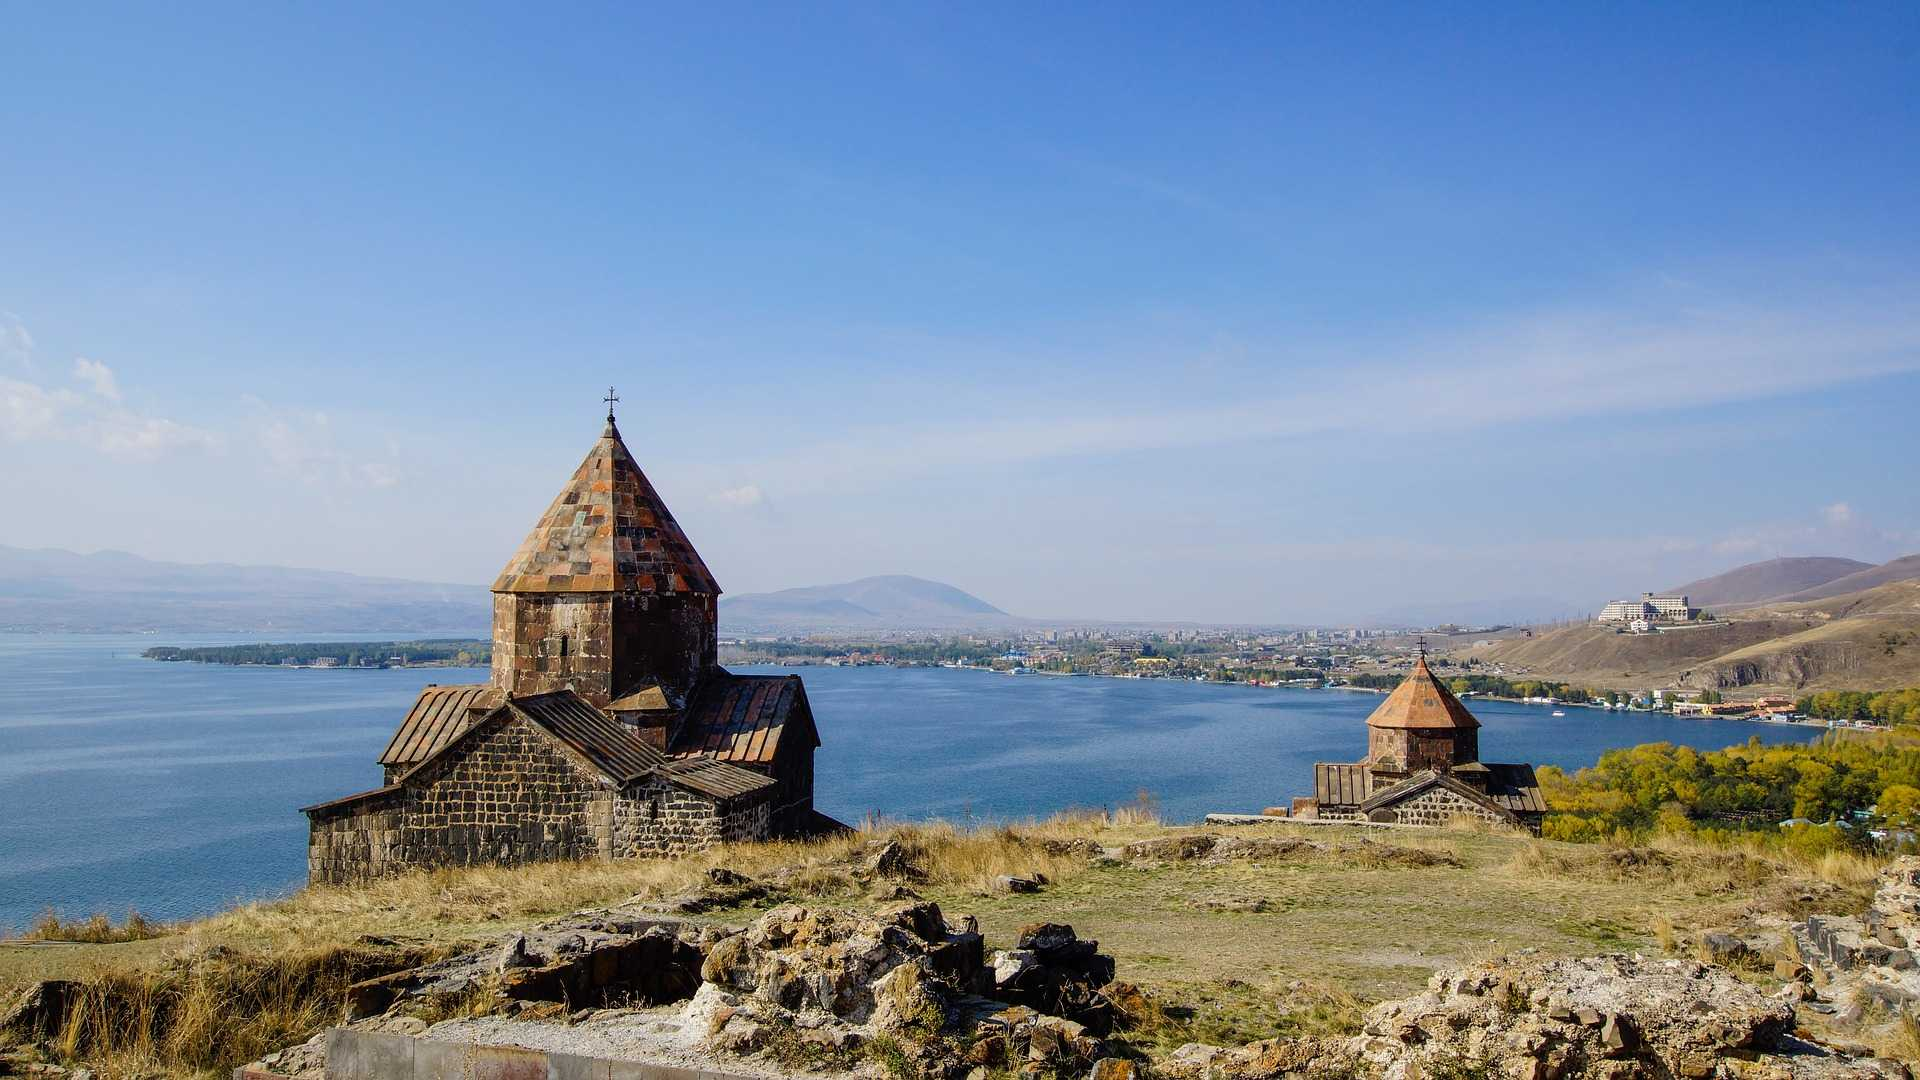 original_lake-sevan-2021712_1920